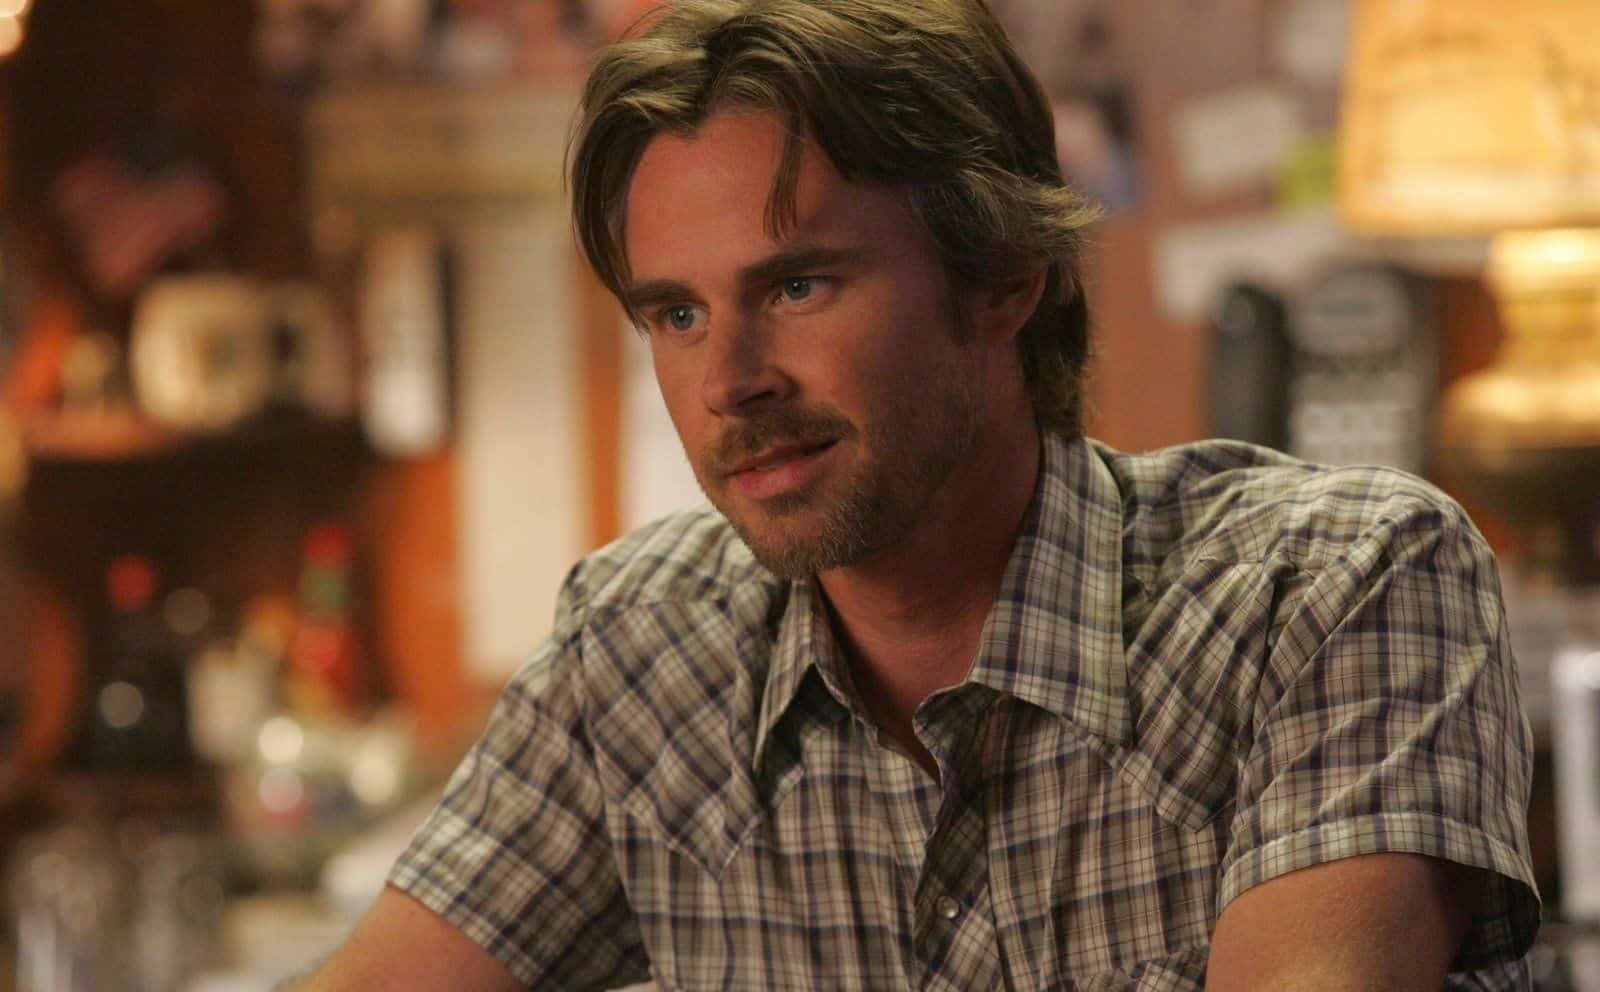 eb0bf2507bb77783a3006cb3a3a235c9 - This Day in Horror: Happy Birthday Sam Trammell